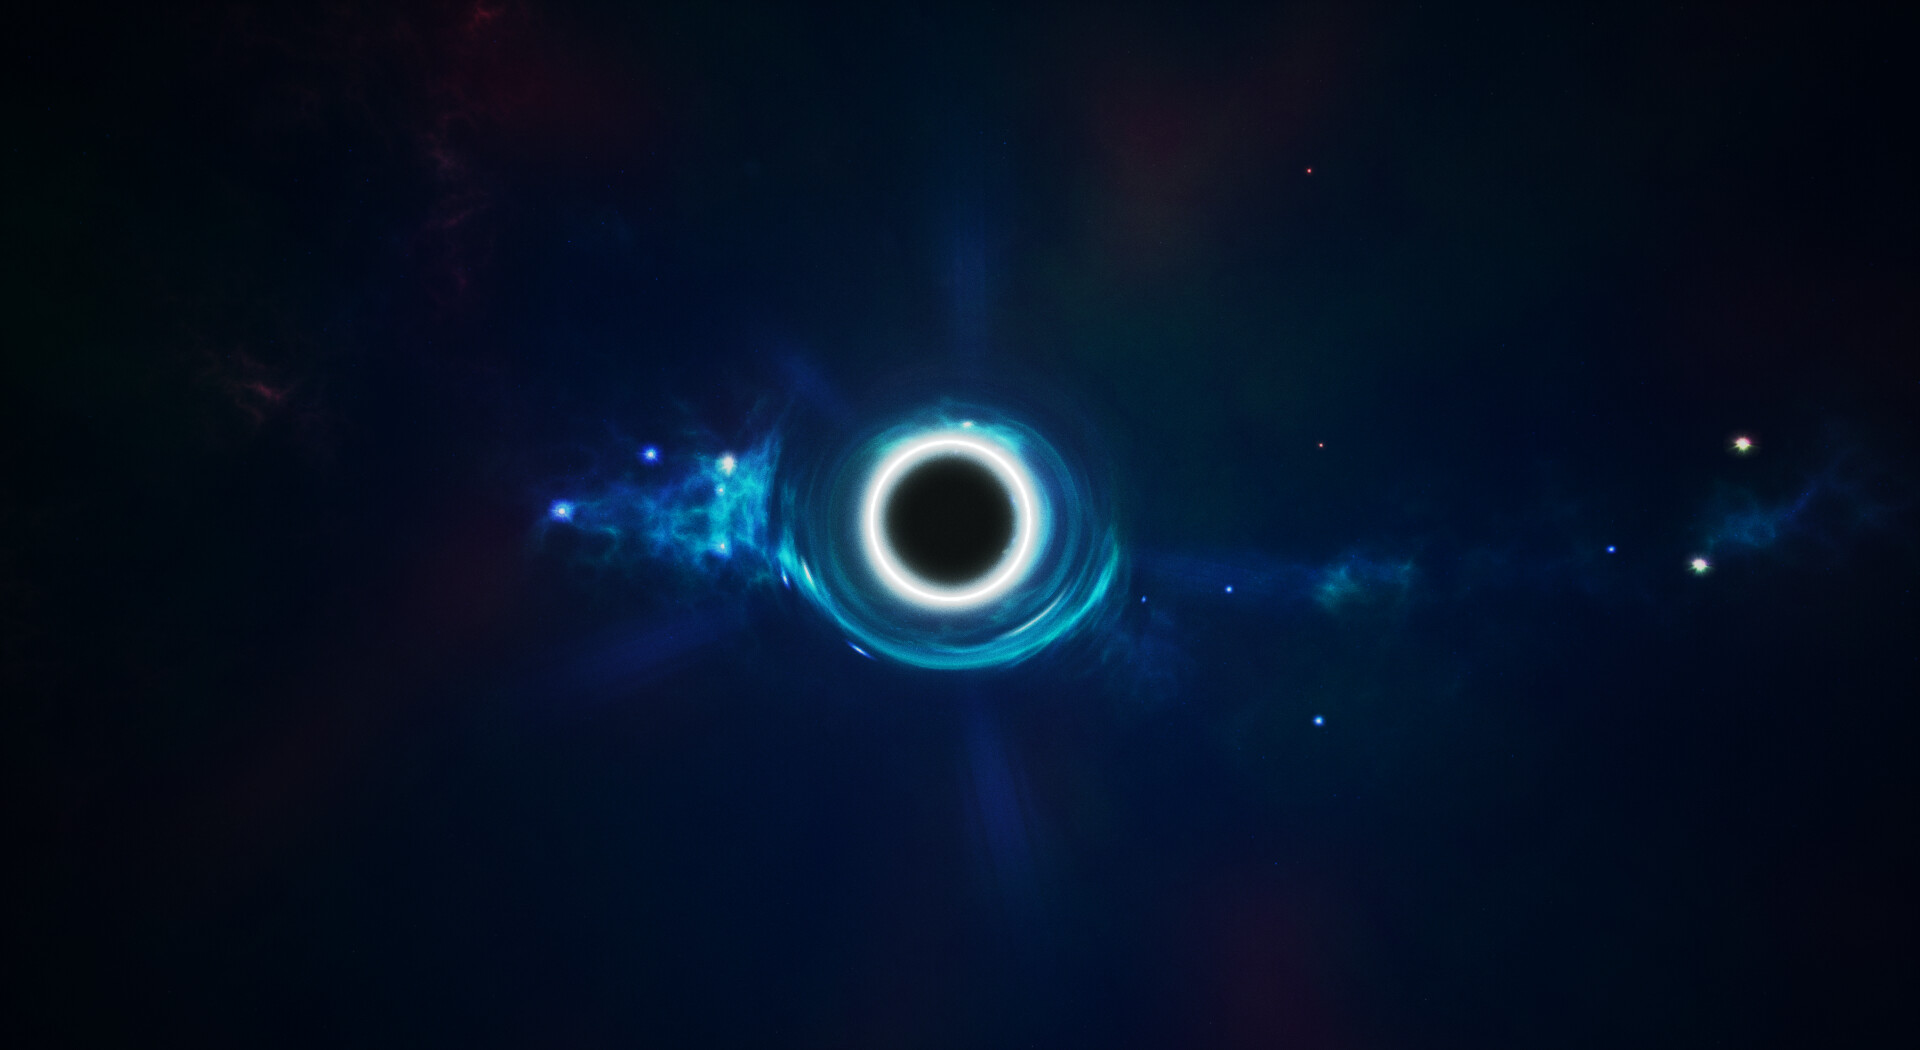 Black hole with an accretion disk.